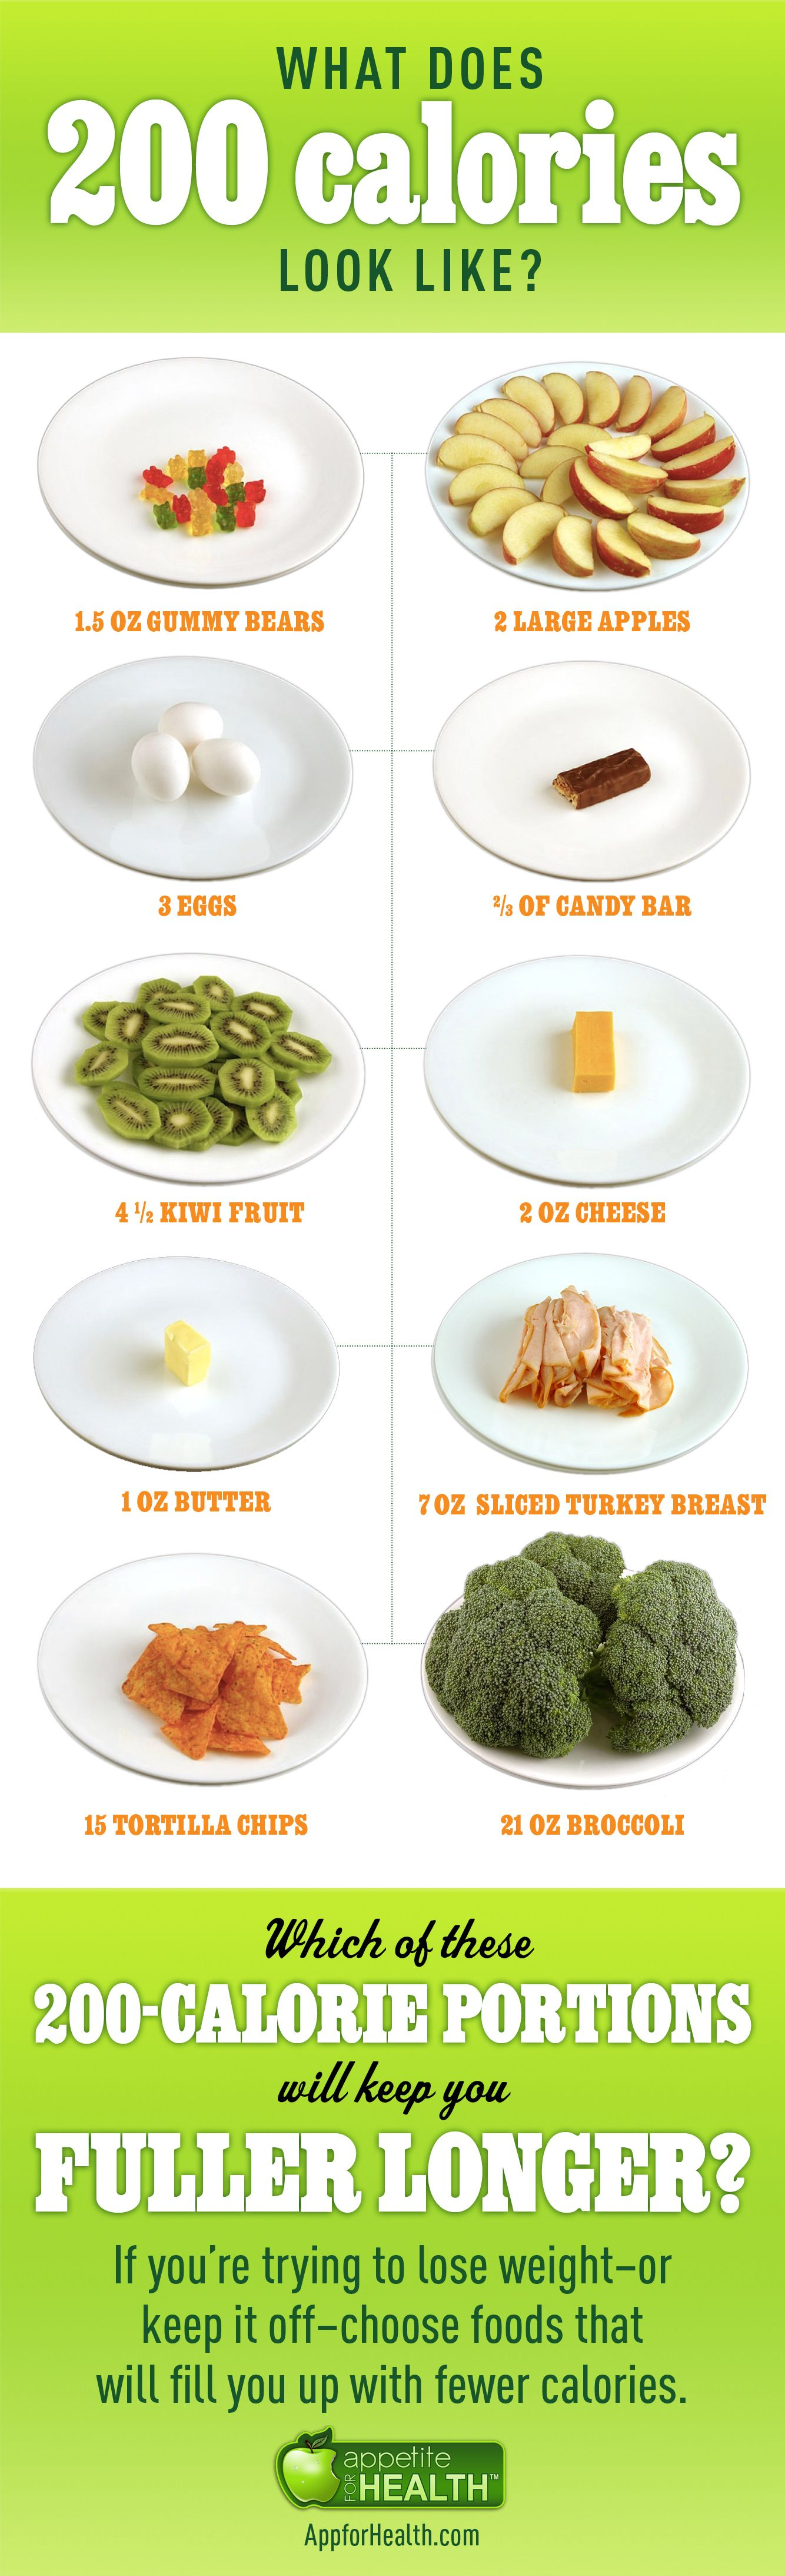 High protein moderate carb low fat diet plan picture 6